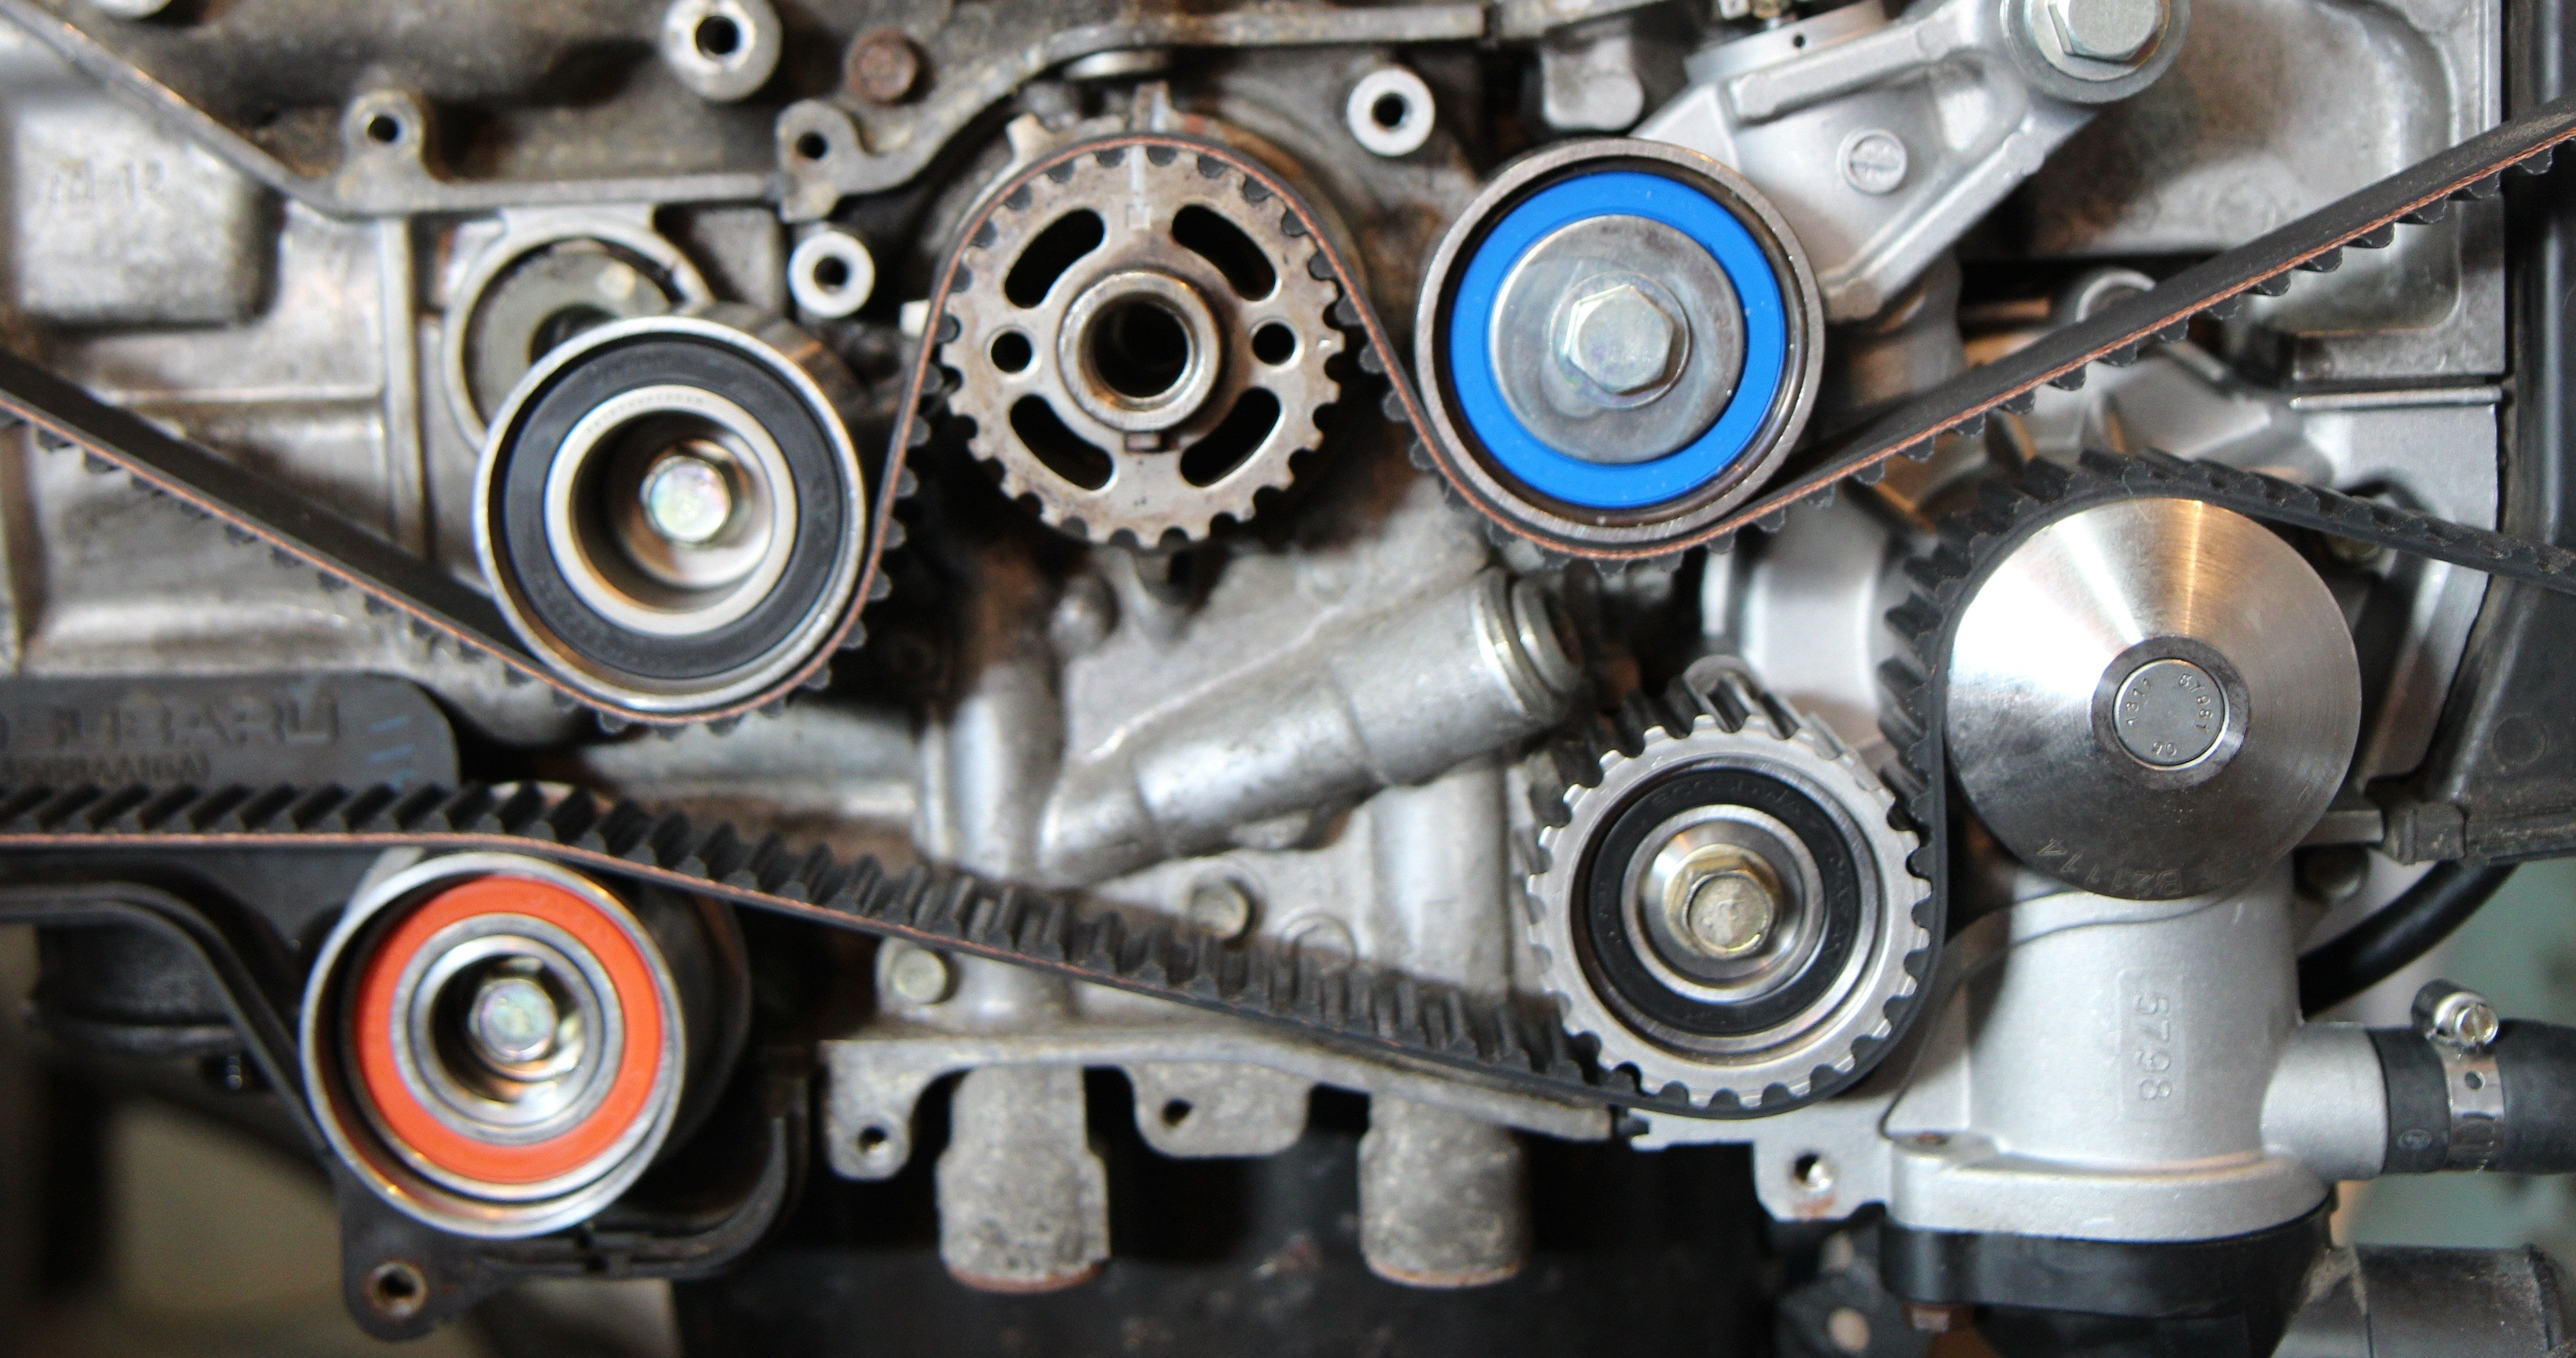 2002 Subaru Outback Parts Diagram How to Set Timing Timing Belt Change On A Subaru sohc Ej25 Of 2002 Subaru Outback Parts Diagram